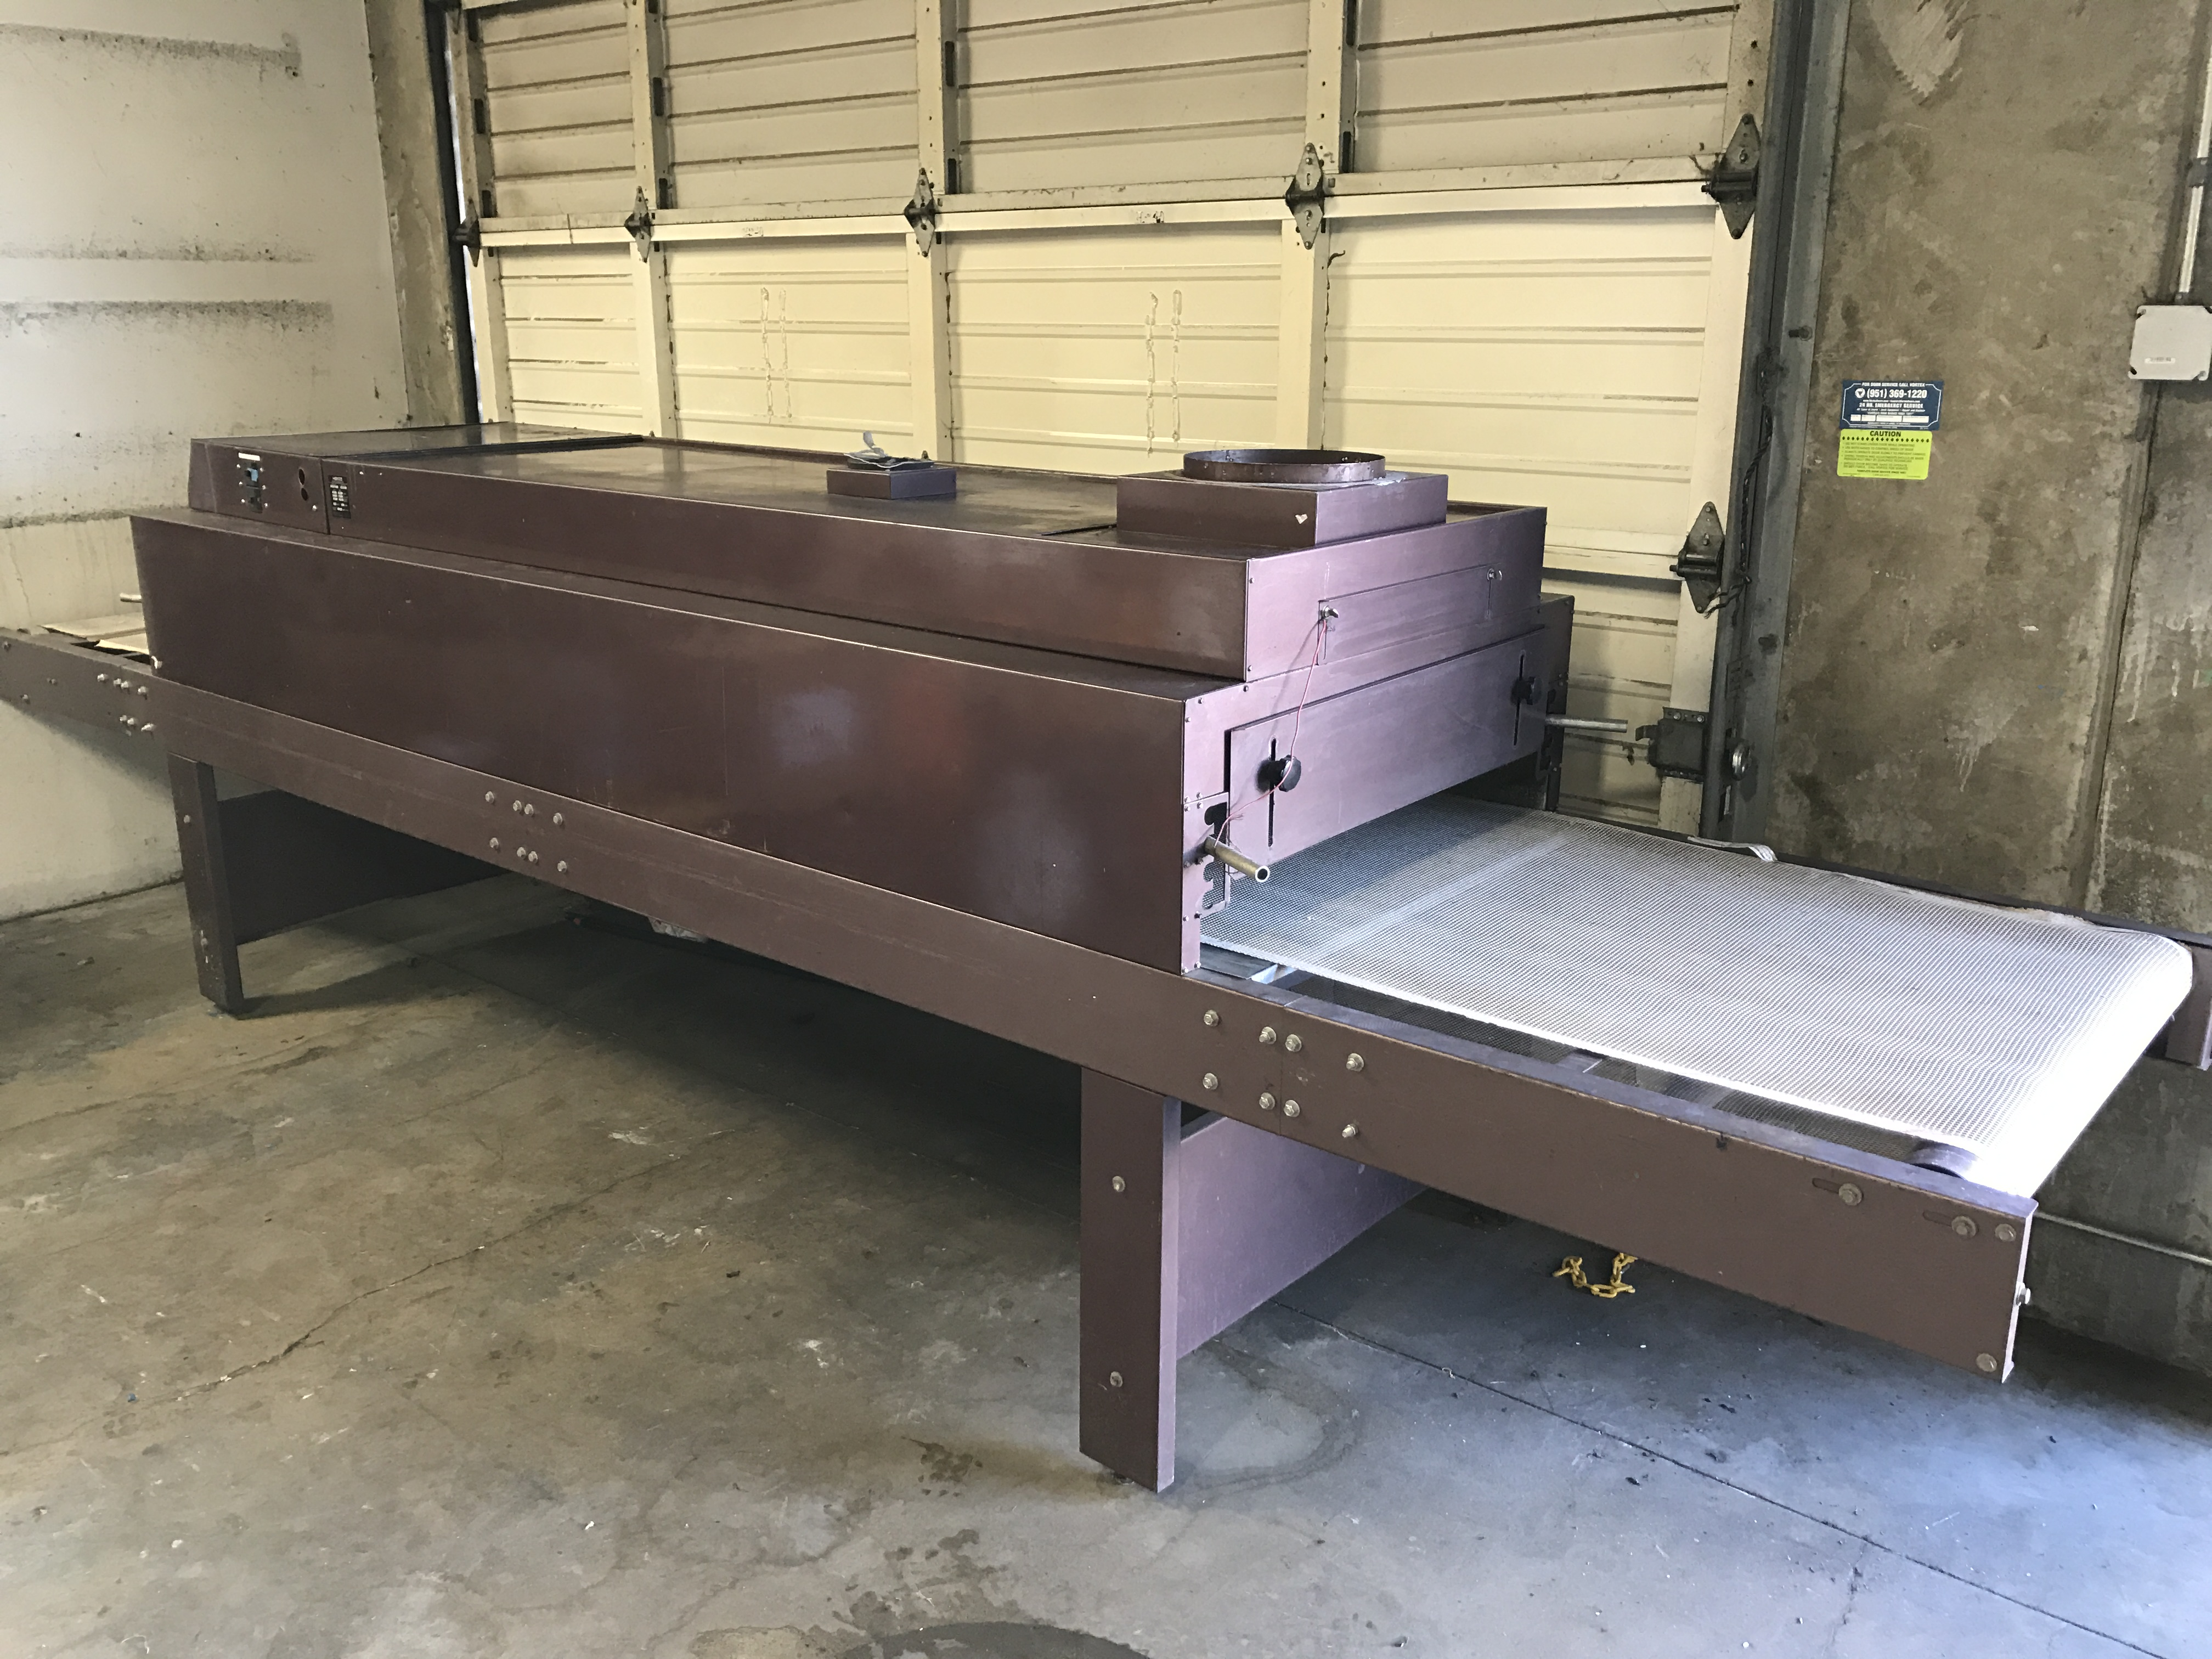 used harco ultracure conveyor dryer for sale contact rick 909 605